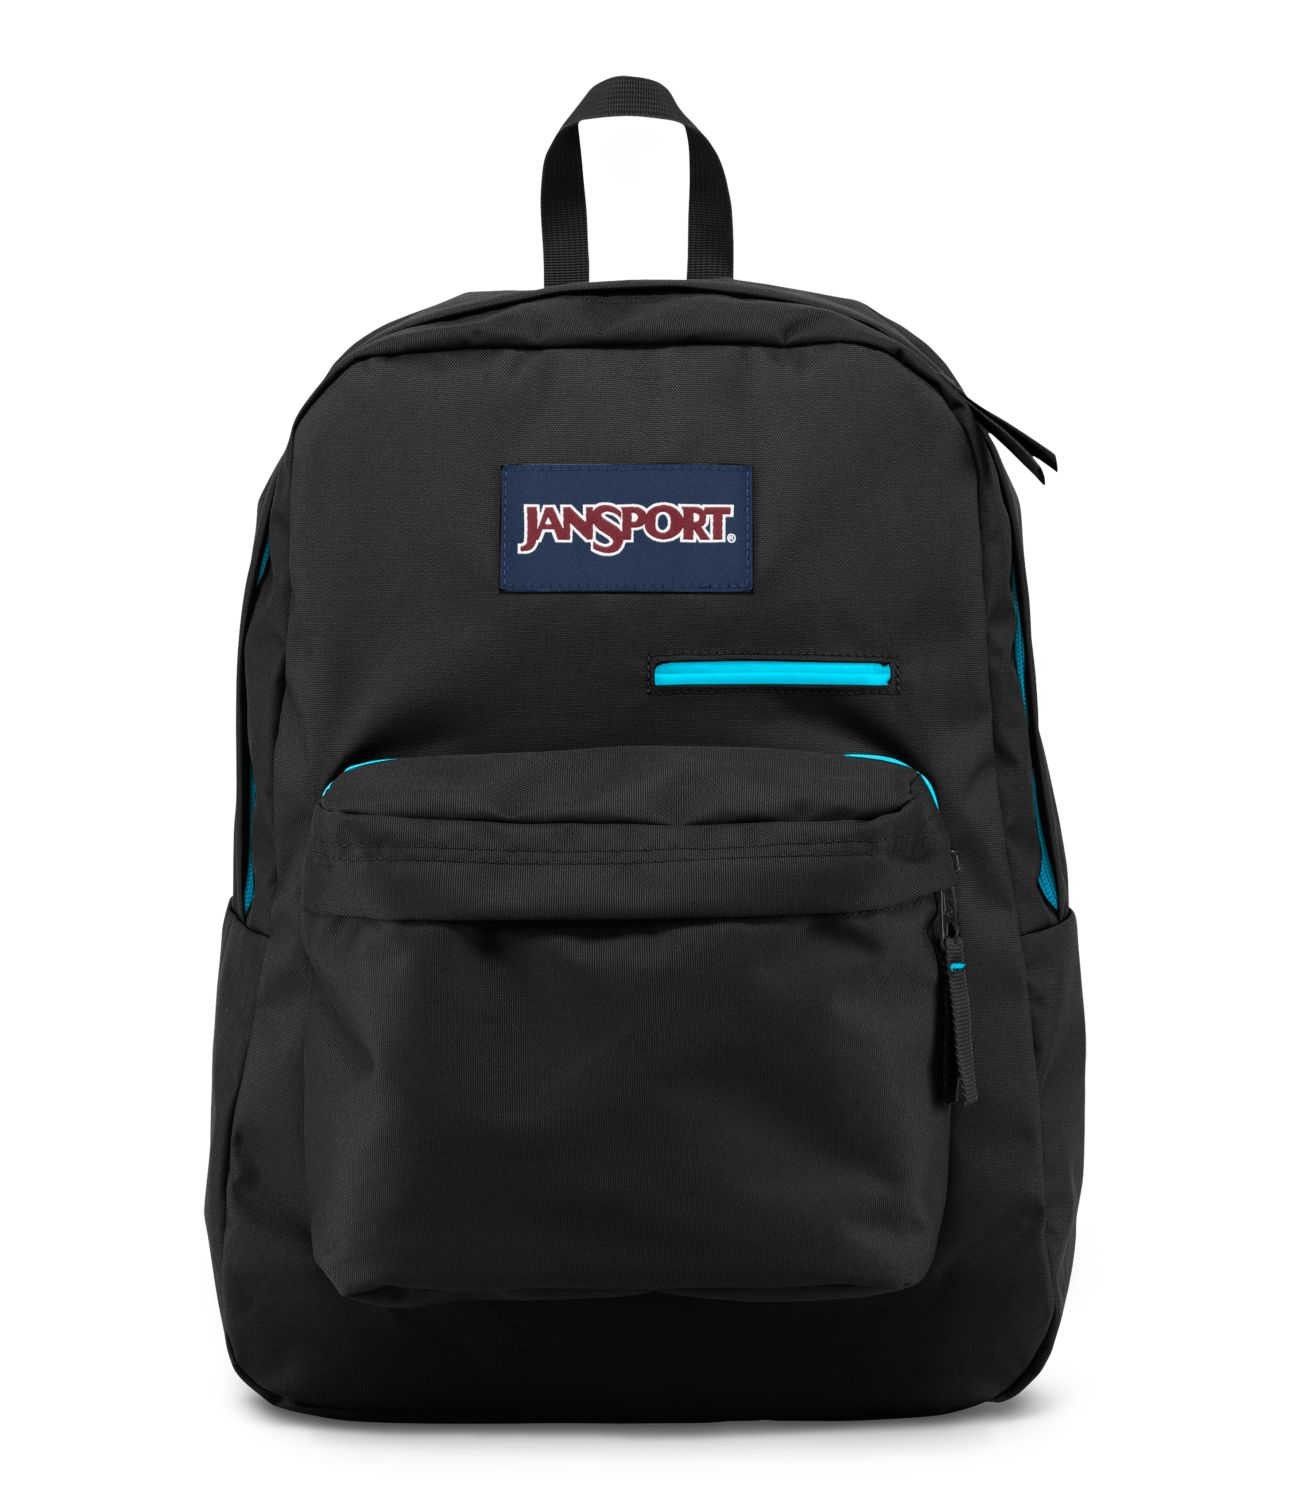 jansport digibreak backpack black fantasyard costume